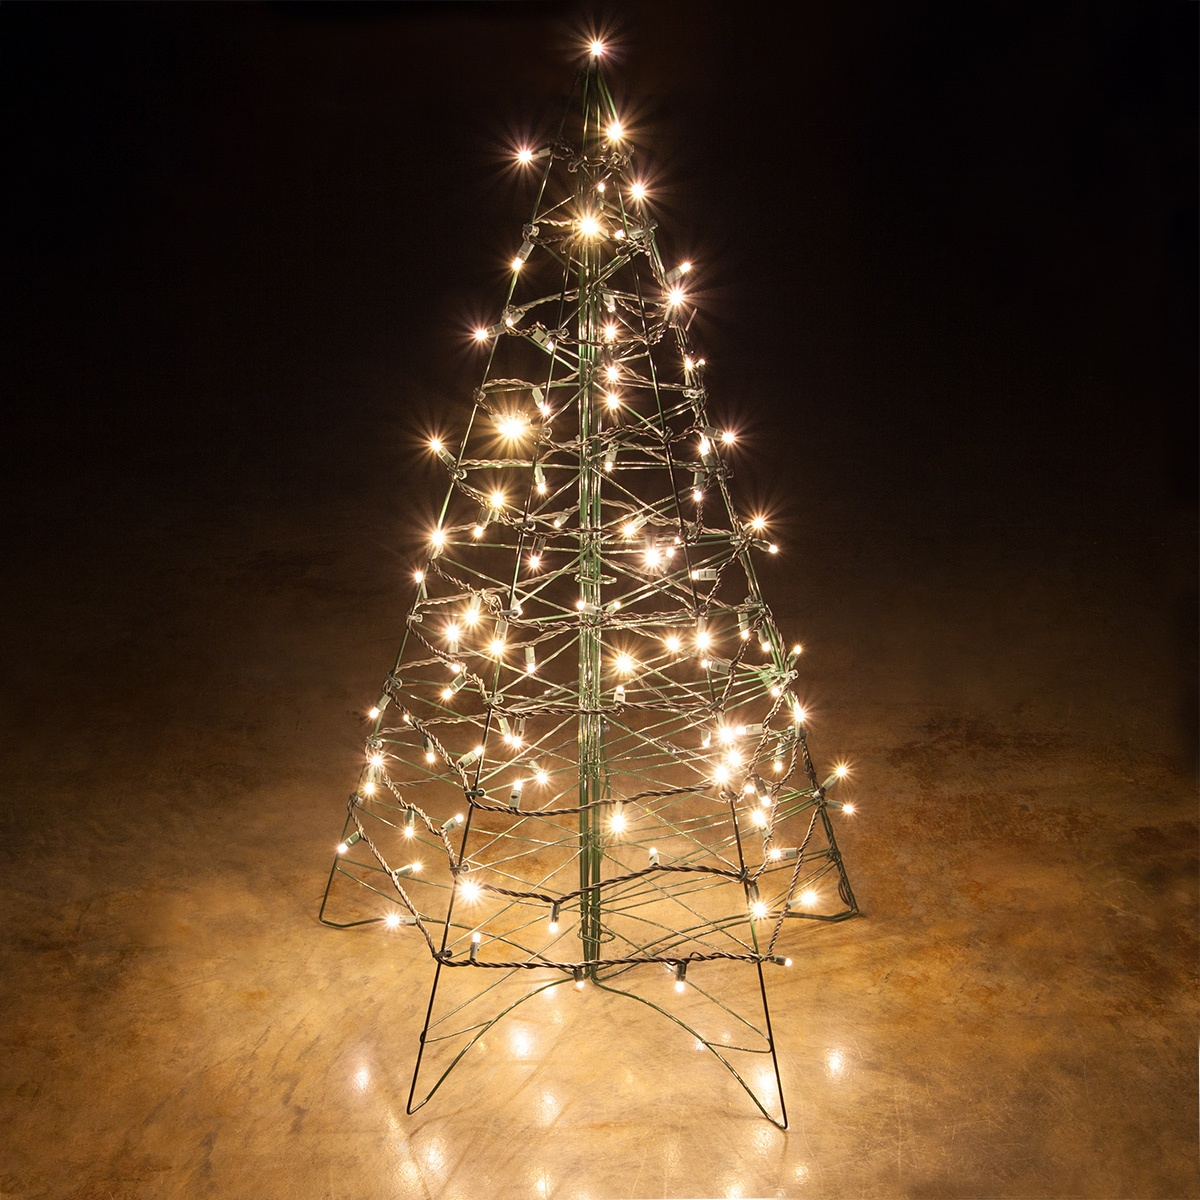 Outdoor Light Trees Christmas: ,Lighting